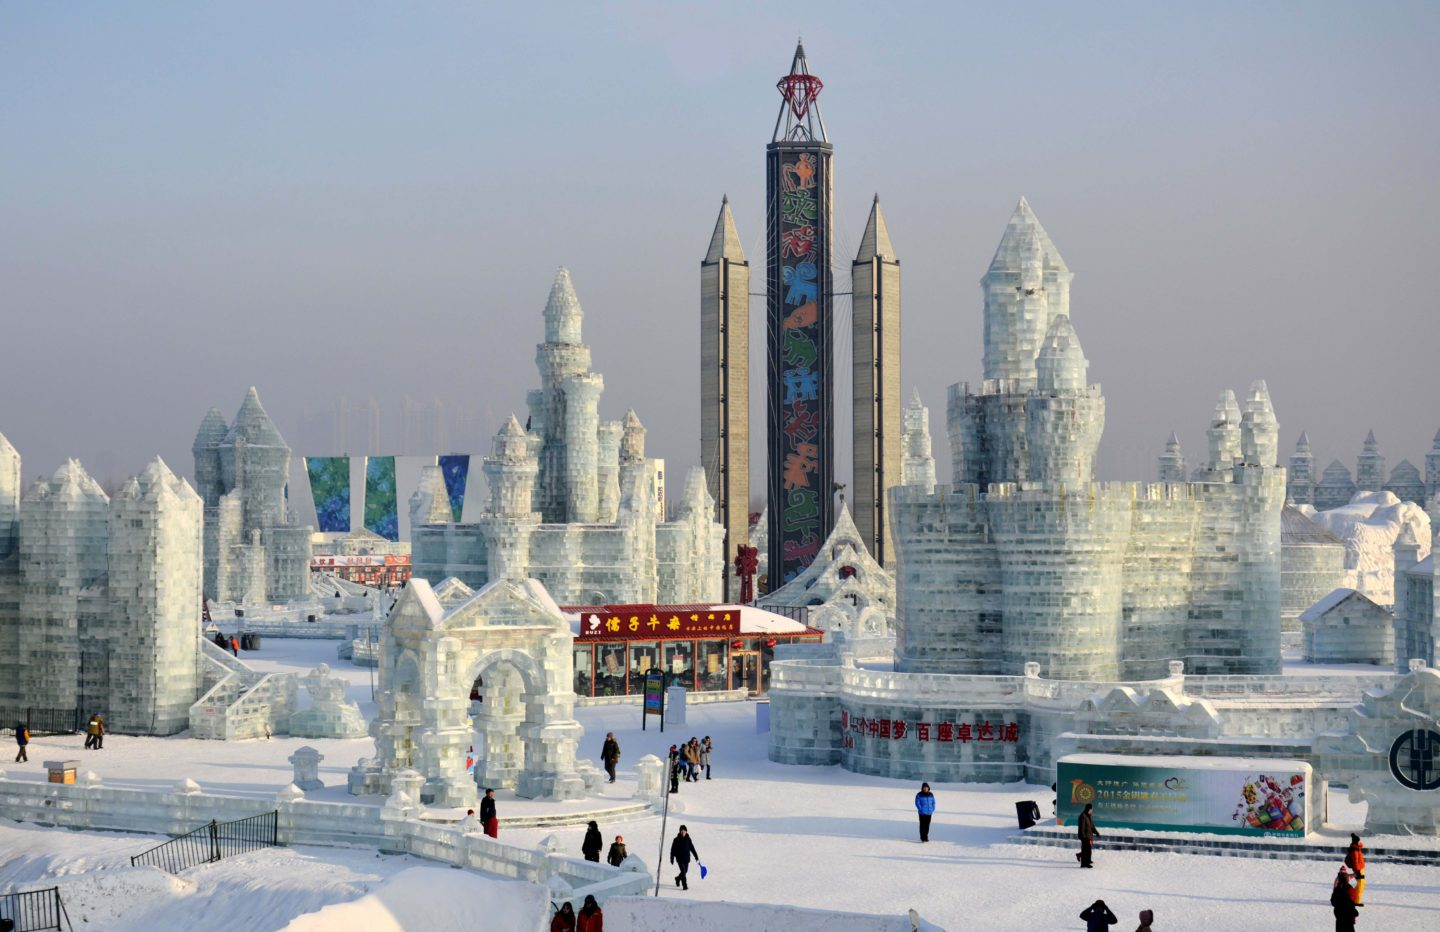 Harbin ice festival during the day